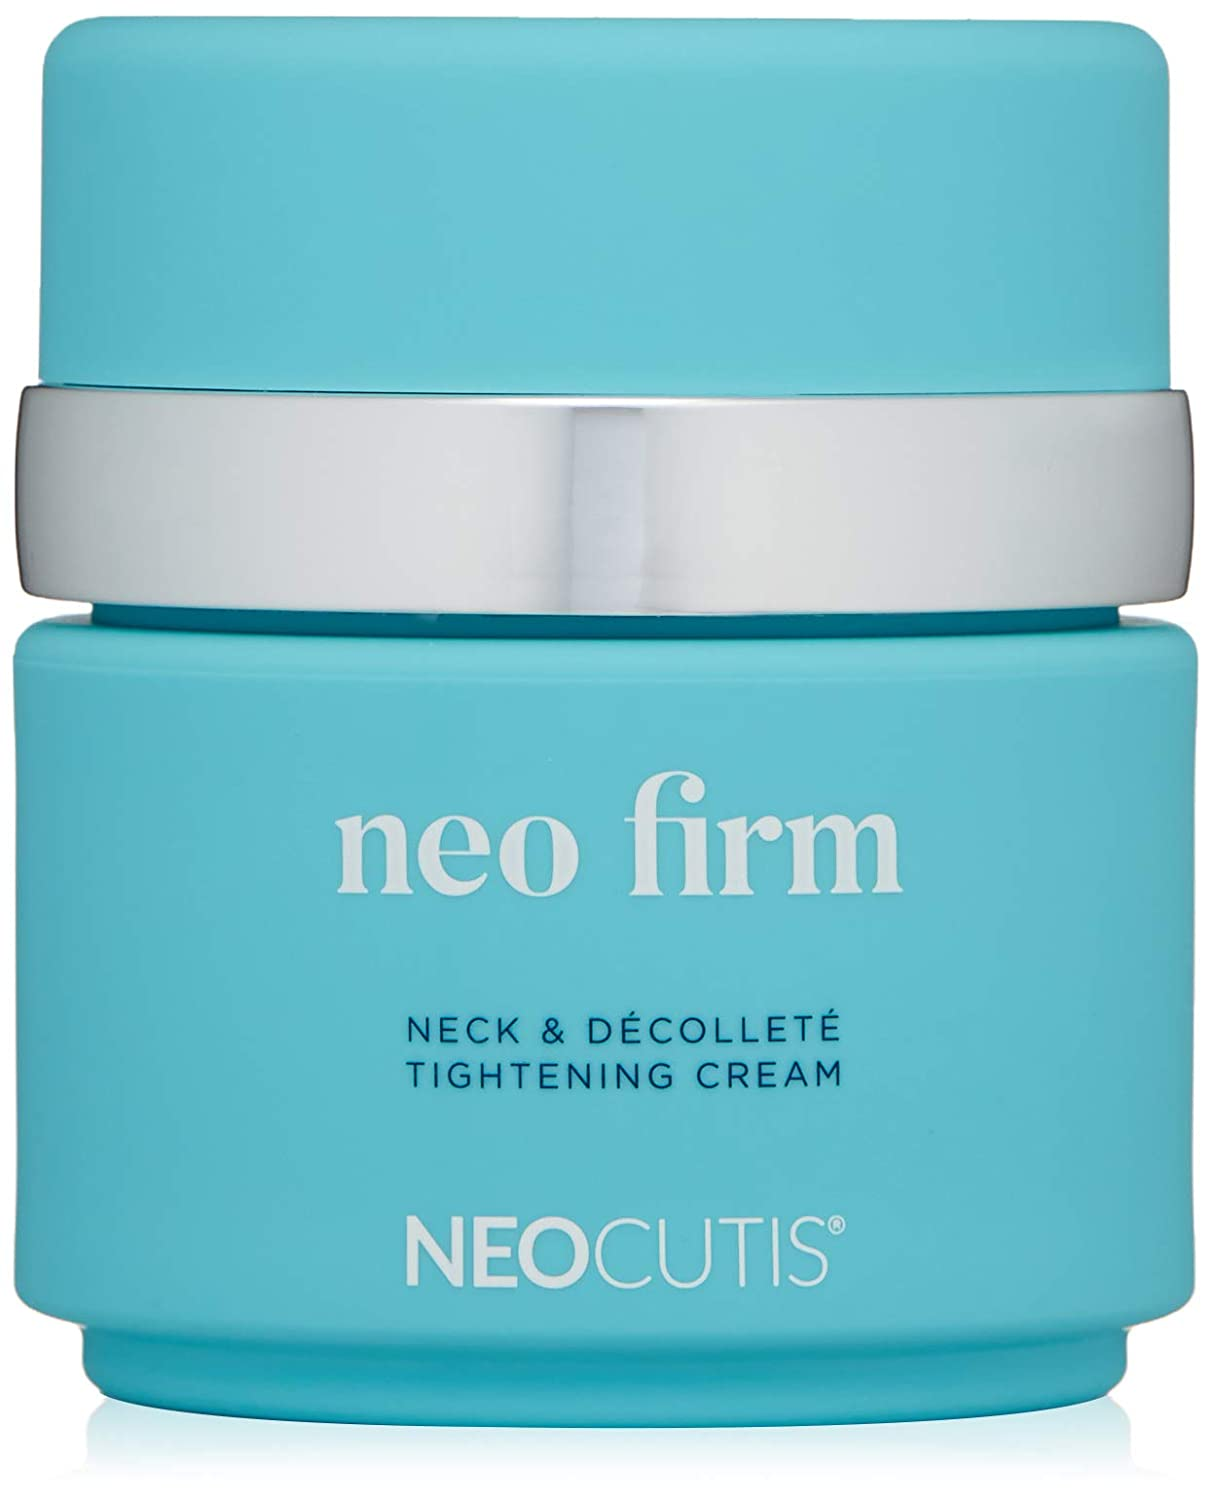 NEOCUTIS Neo Firm | Neck & Tightening Cream | 2 Month Supply |Restores elastin & collagen to firm and tighten skin plus diminish the appearance of age spots and uneven skin tone | Dermatologist Tested: Premium Beauty